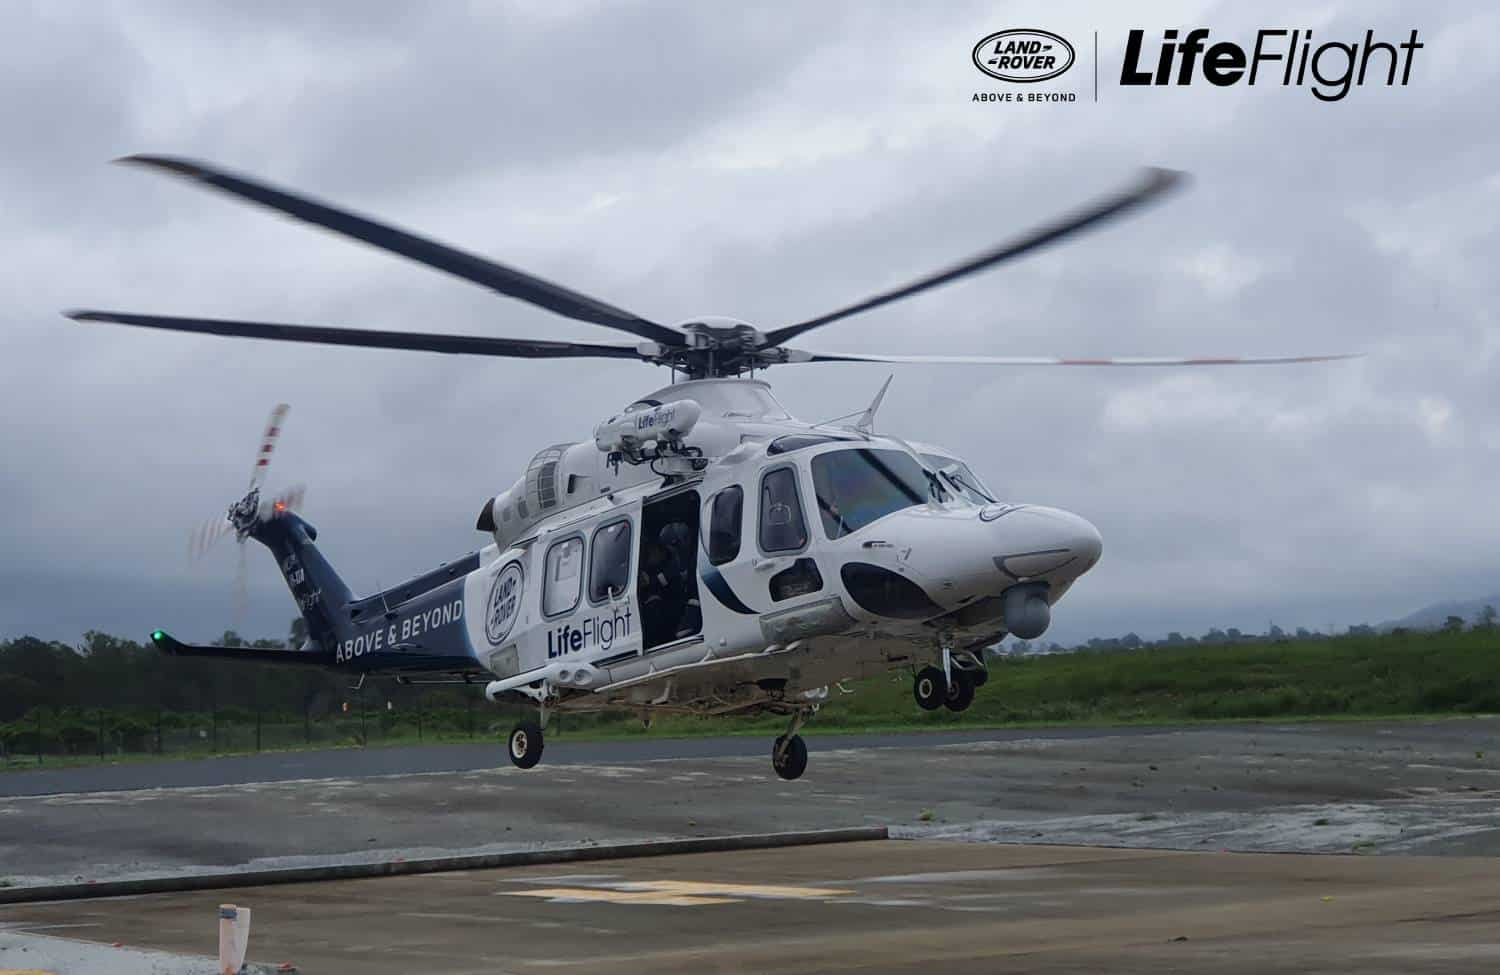 Land Rover LifeFlight Special Mission chopper called in to assist NSW flood crisis